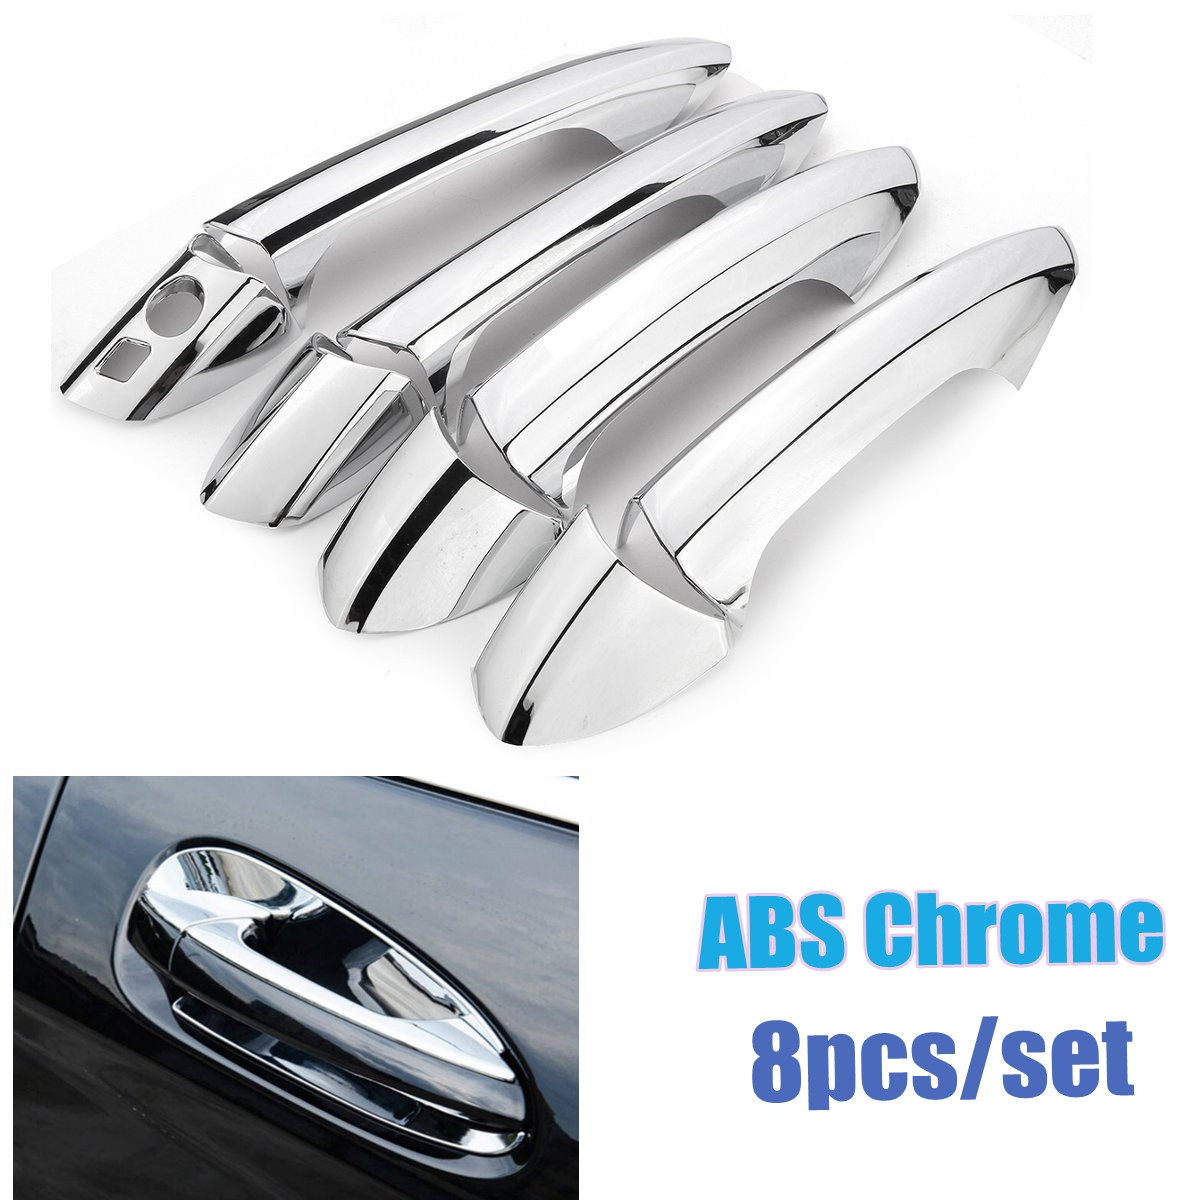 8 Pz Chrome Side Door Handle Copertura Trim Set per Mercedes Benz B/C/E/GLK/ML Class W246 W204 W212 X204 W166 W117